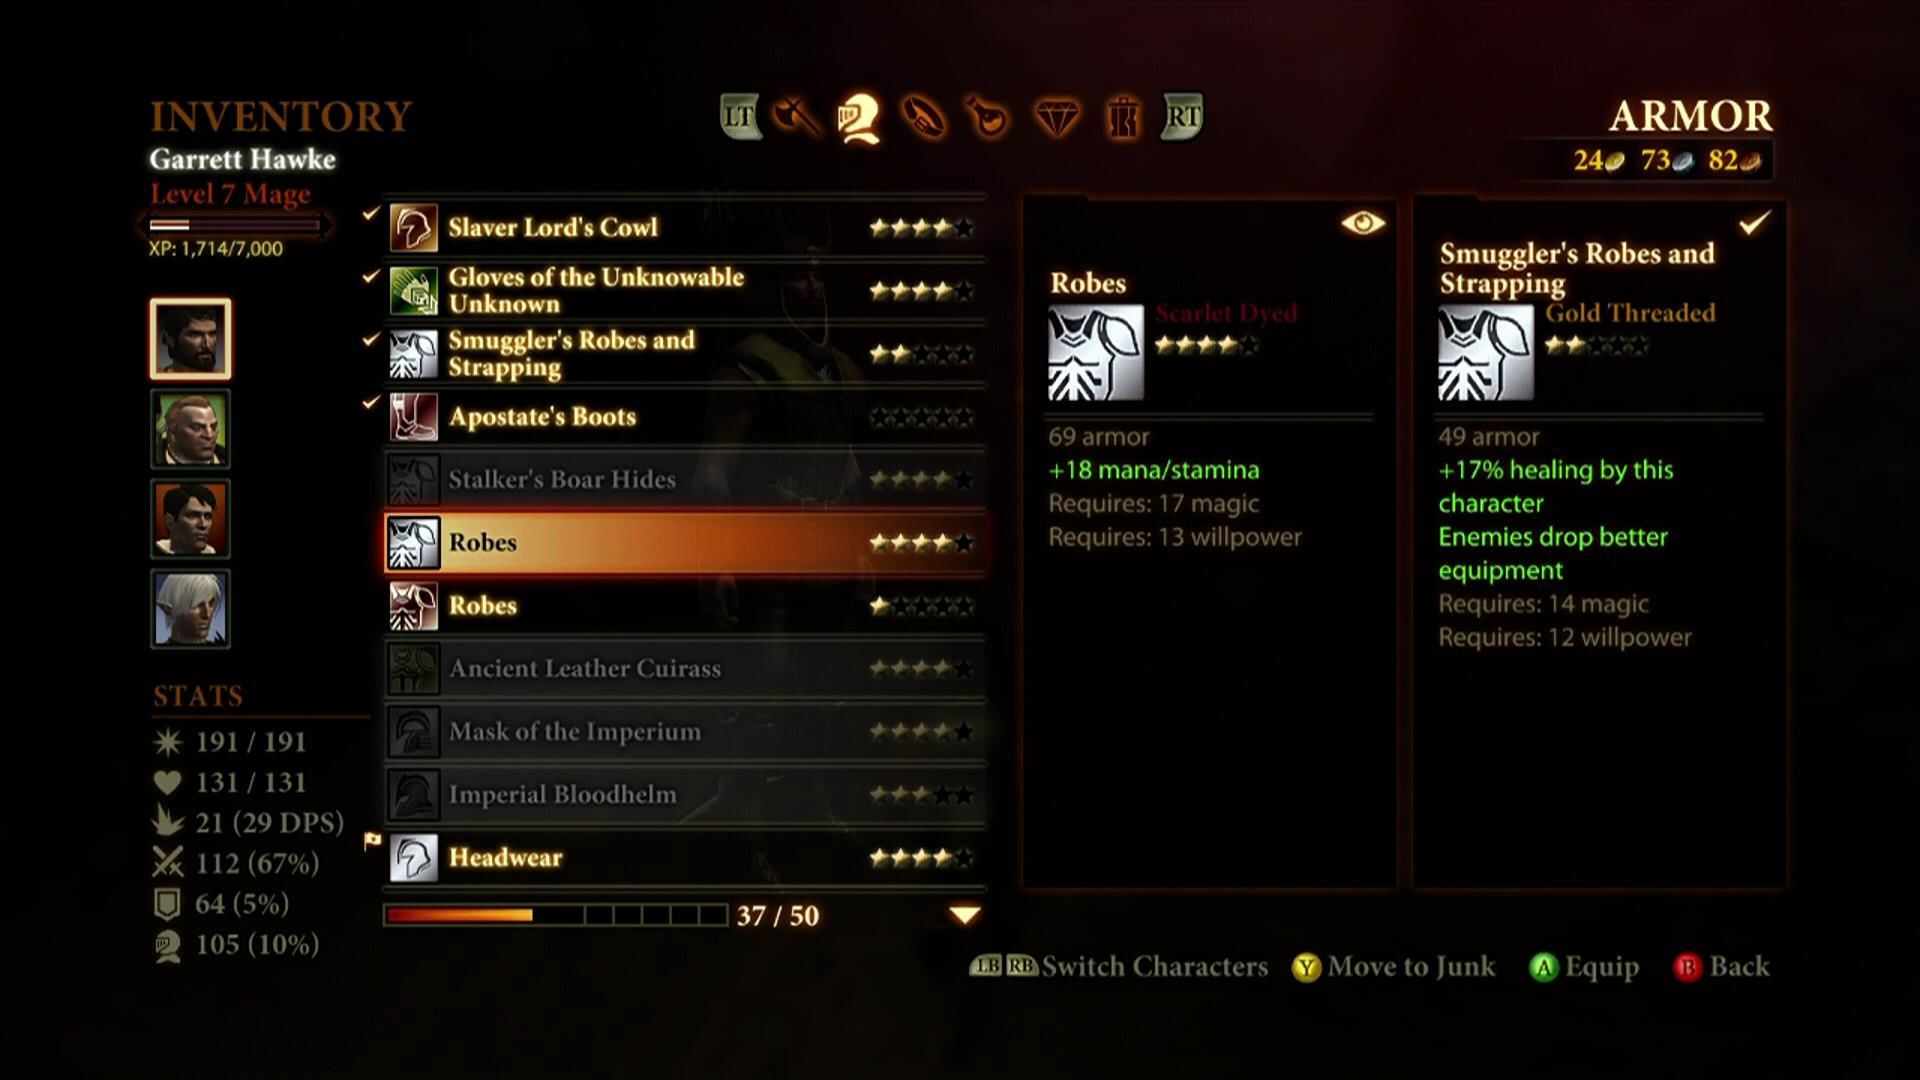 Dragon Age II Xbox 360 Inventory screen including item comparison